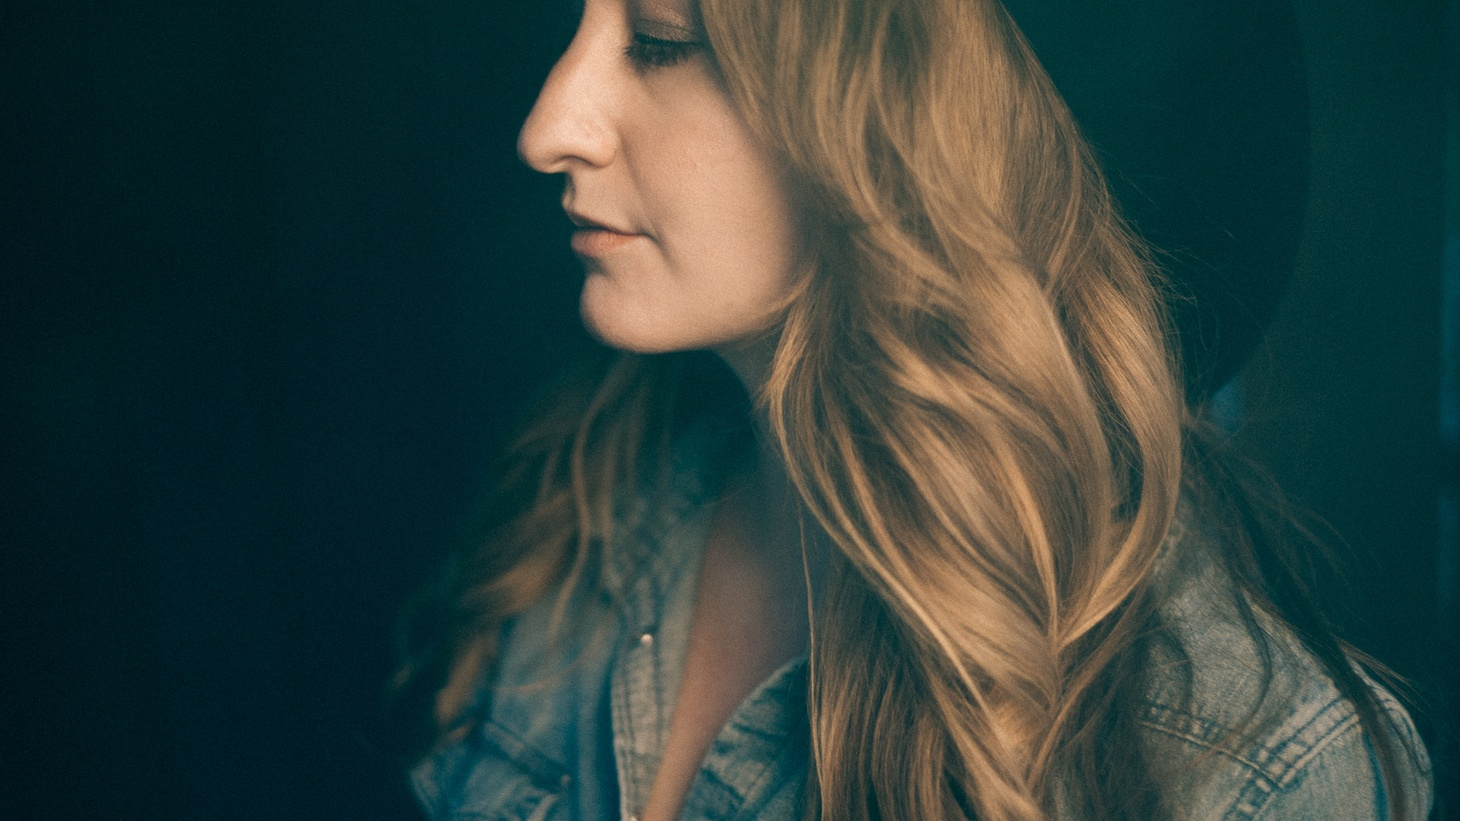 Margo Price has the sound of a timeless country singer and has captivated the music industry with her true tales of loss, struggle and redemption.